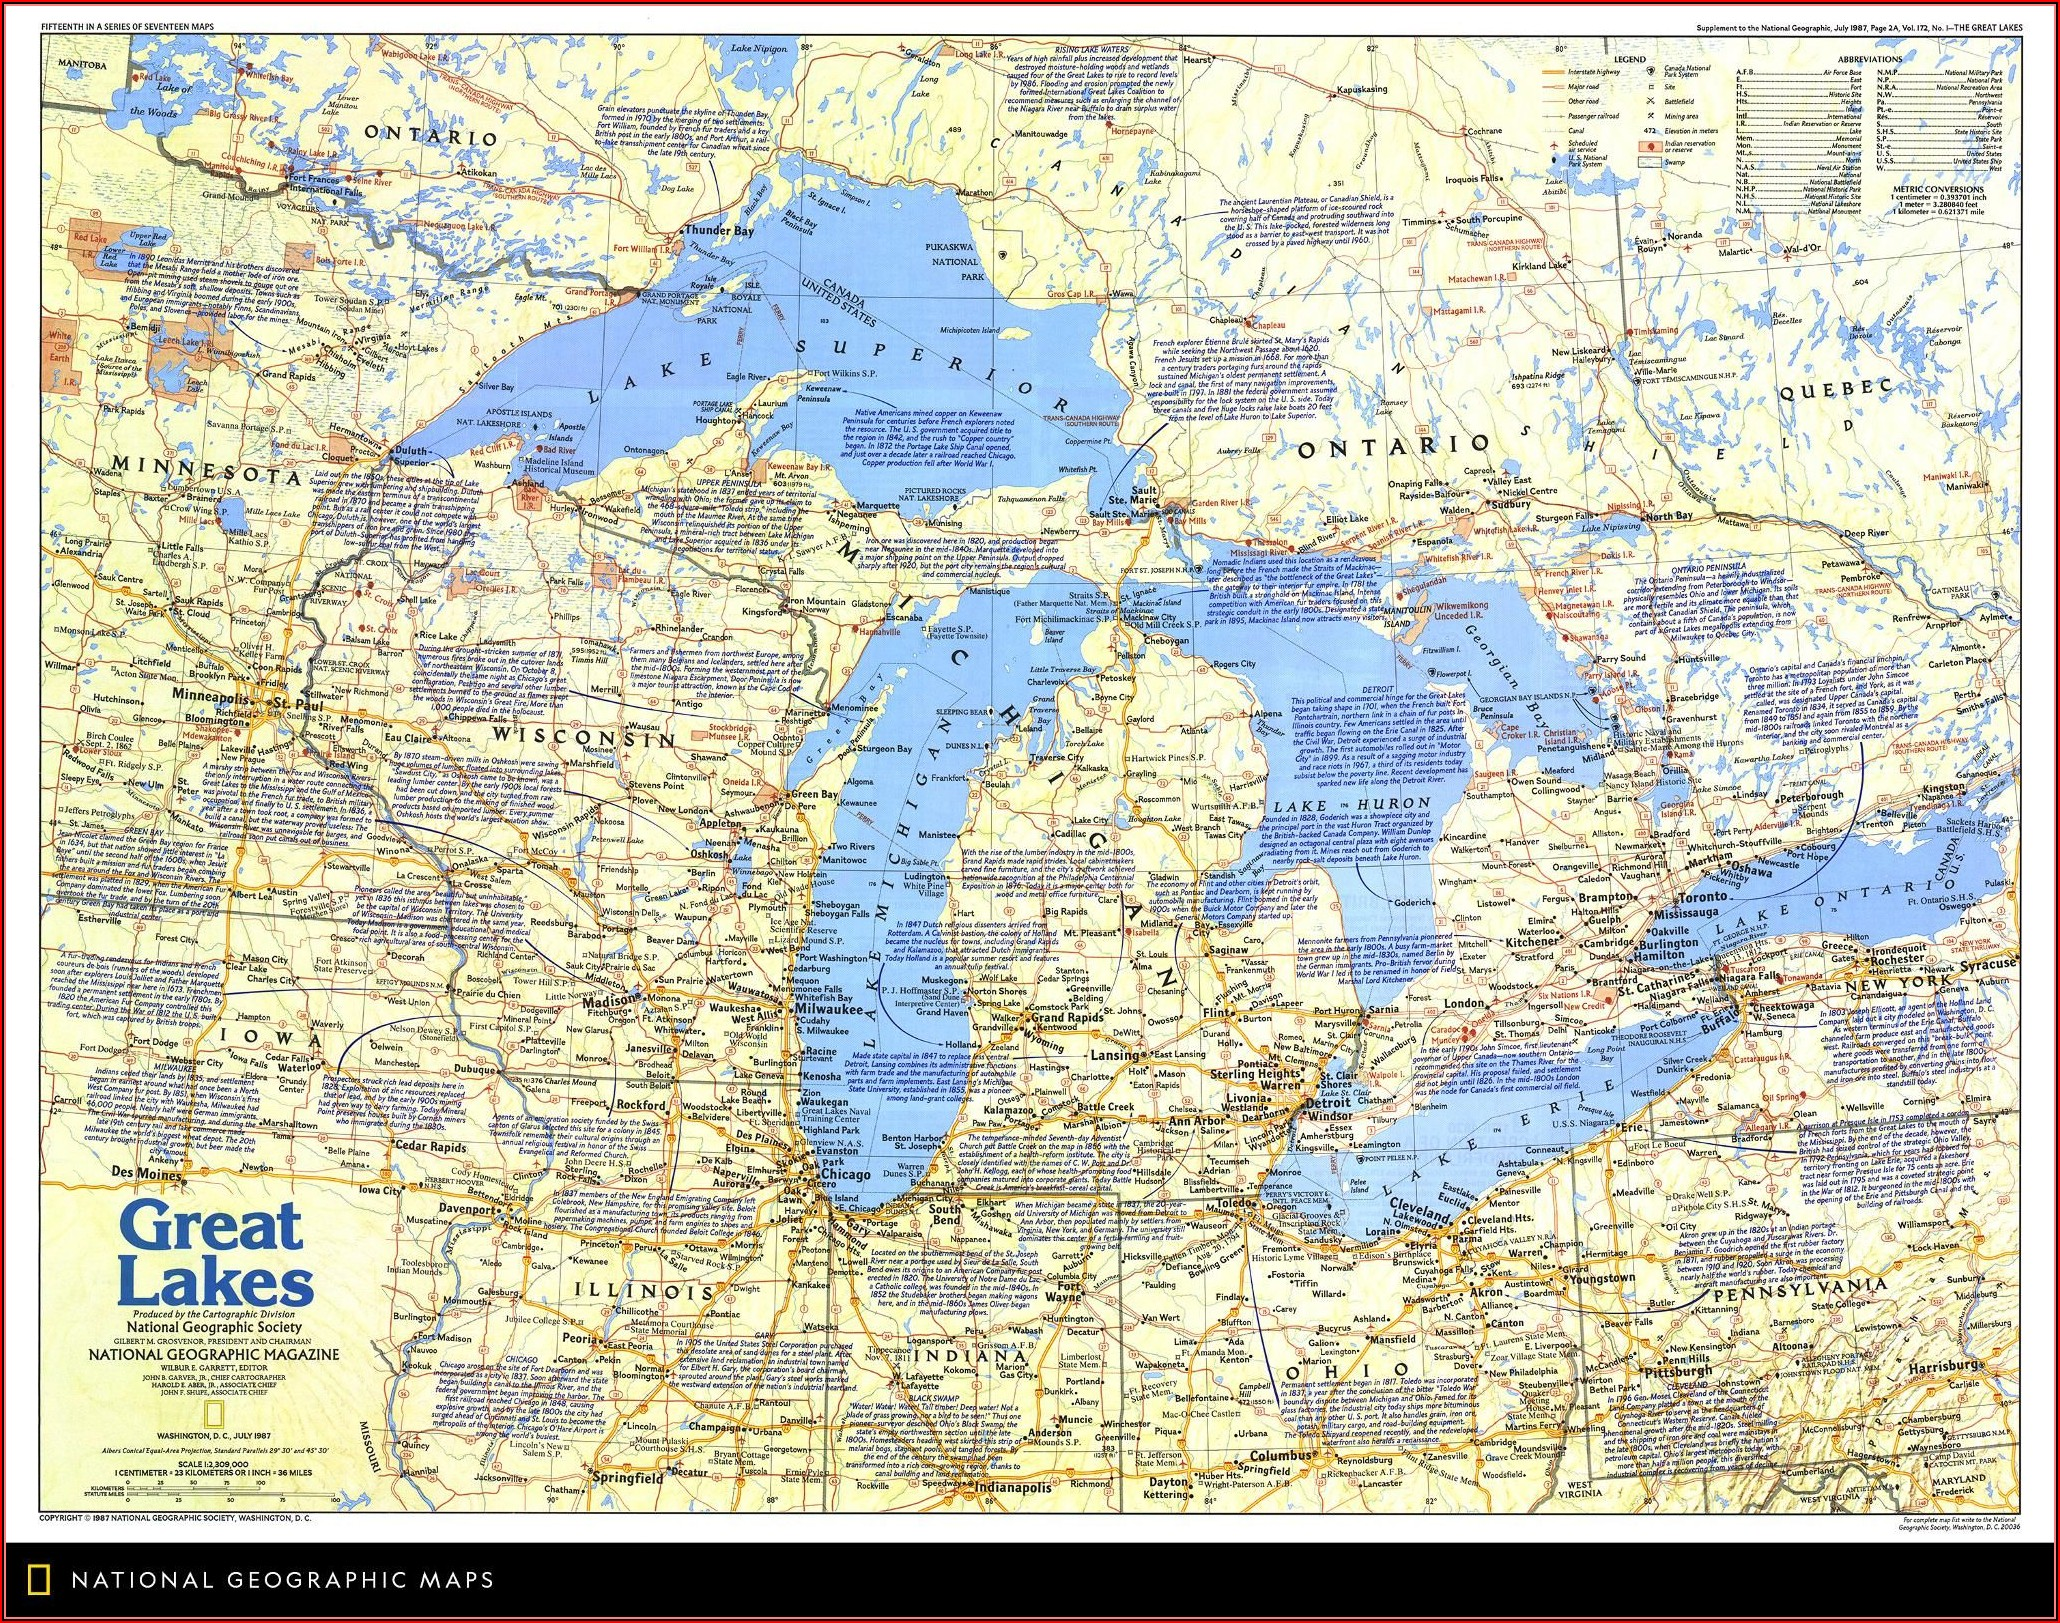 Map Of Great Lakes Illinois